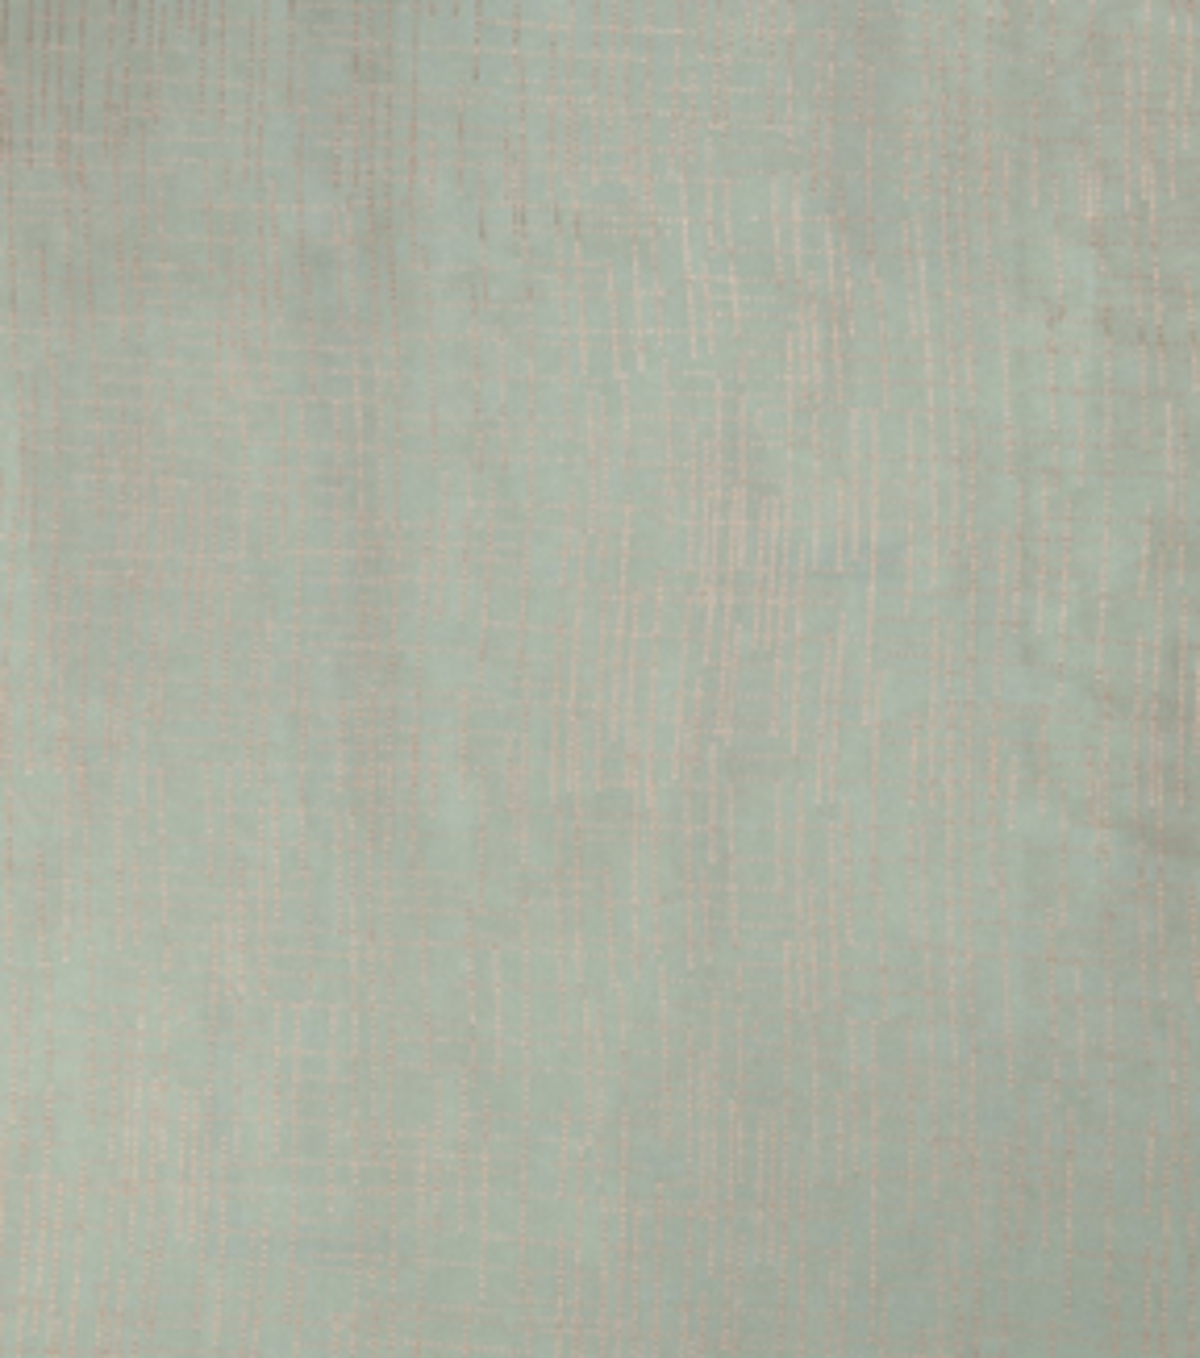 Home Decor 8\u0022x8\u0022 Fabric Swatch-Print Fabric Eaton Square Fox Hunt Seaglass